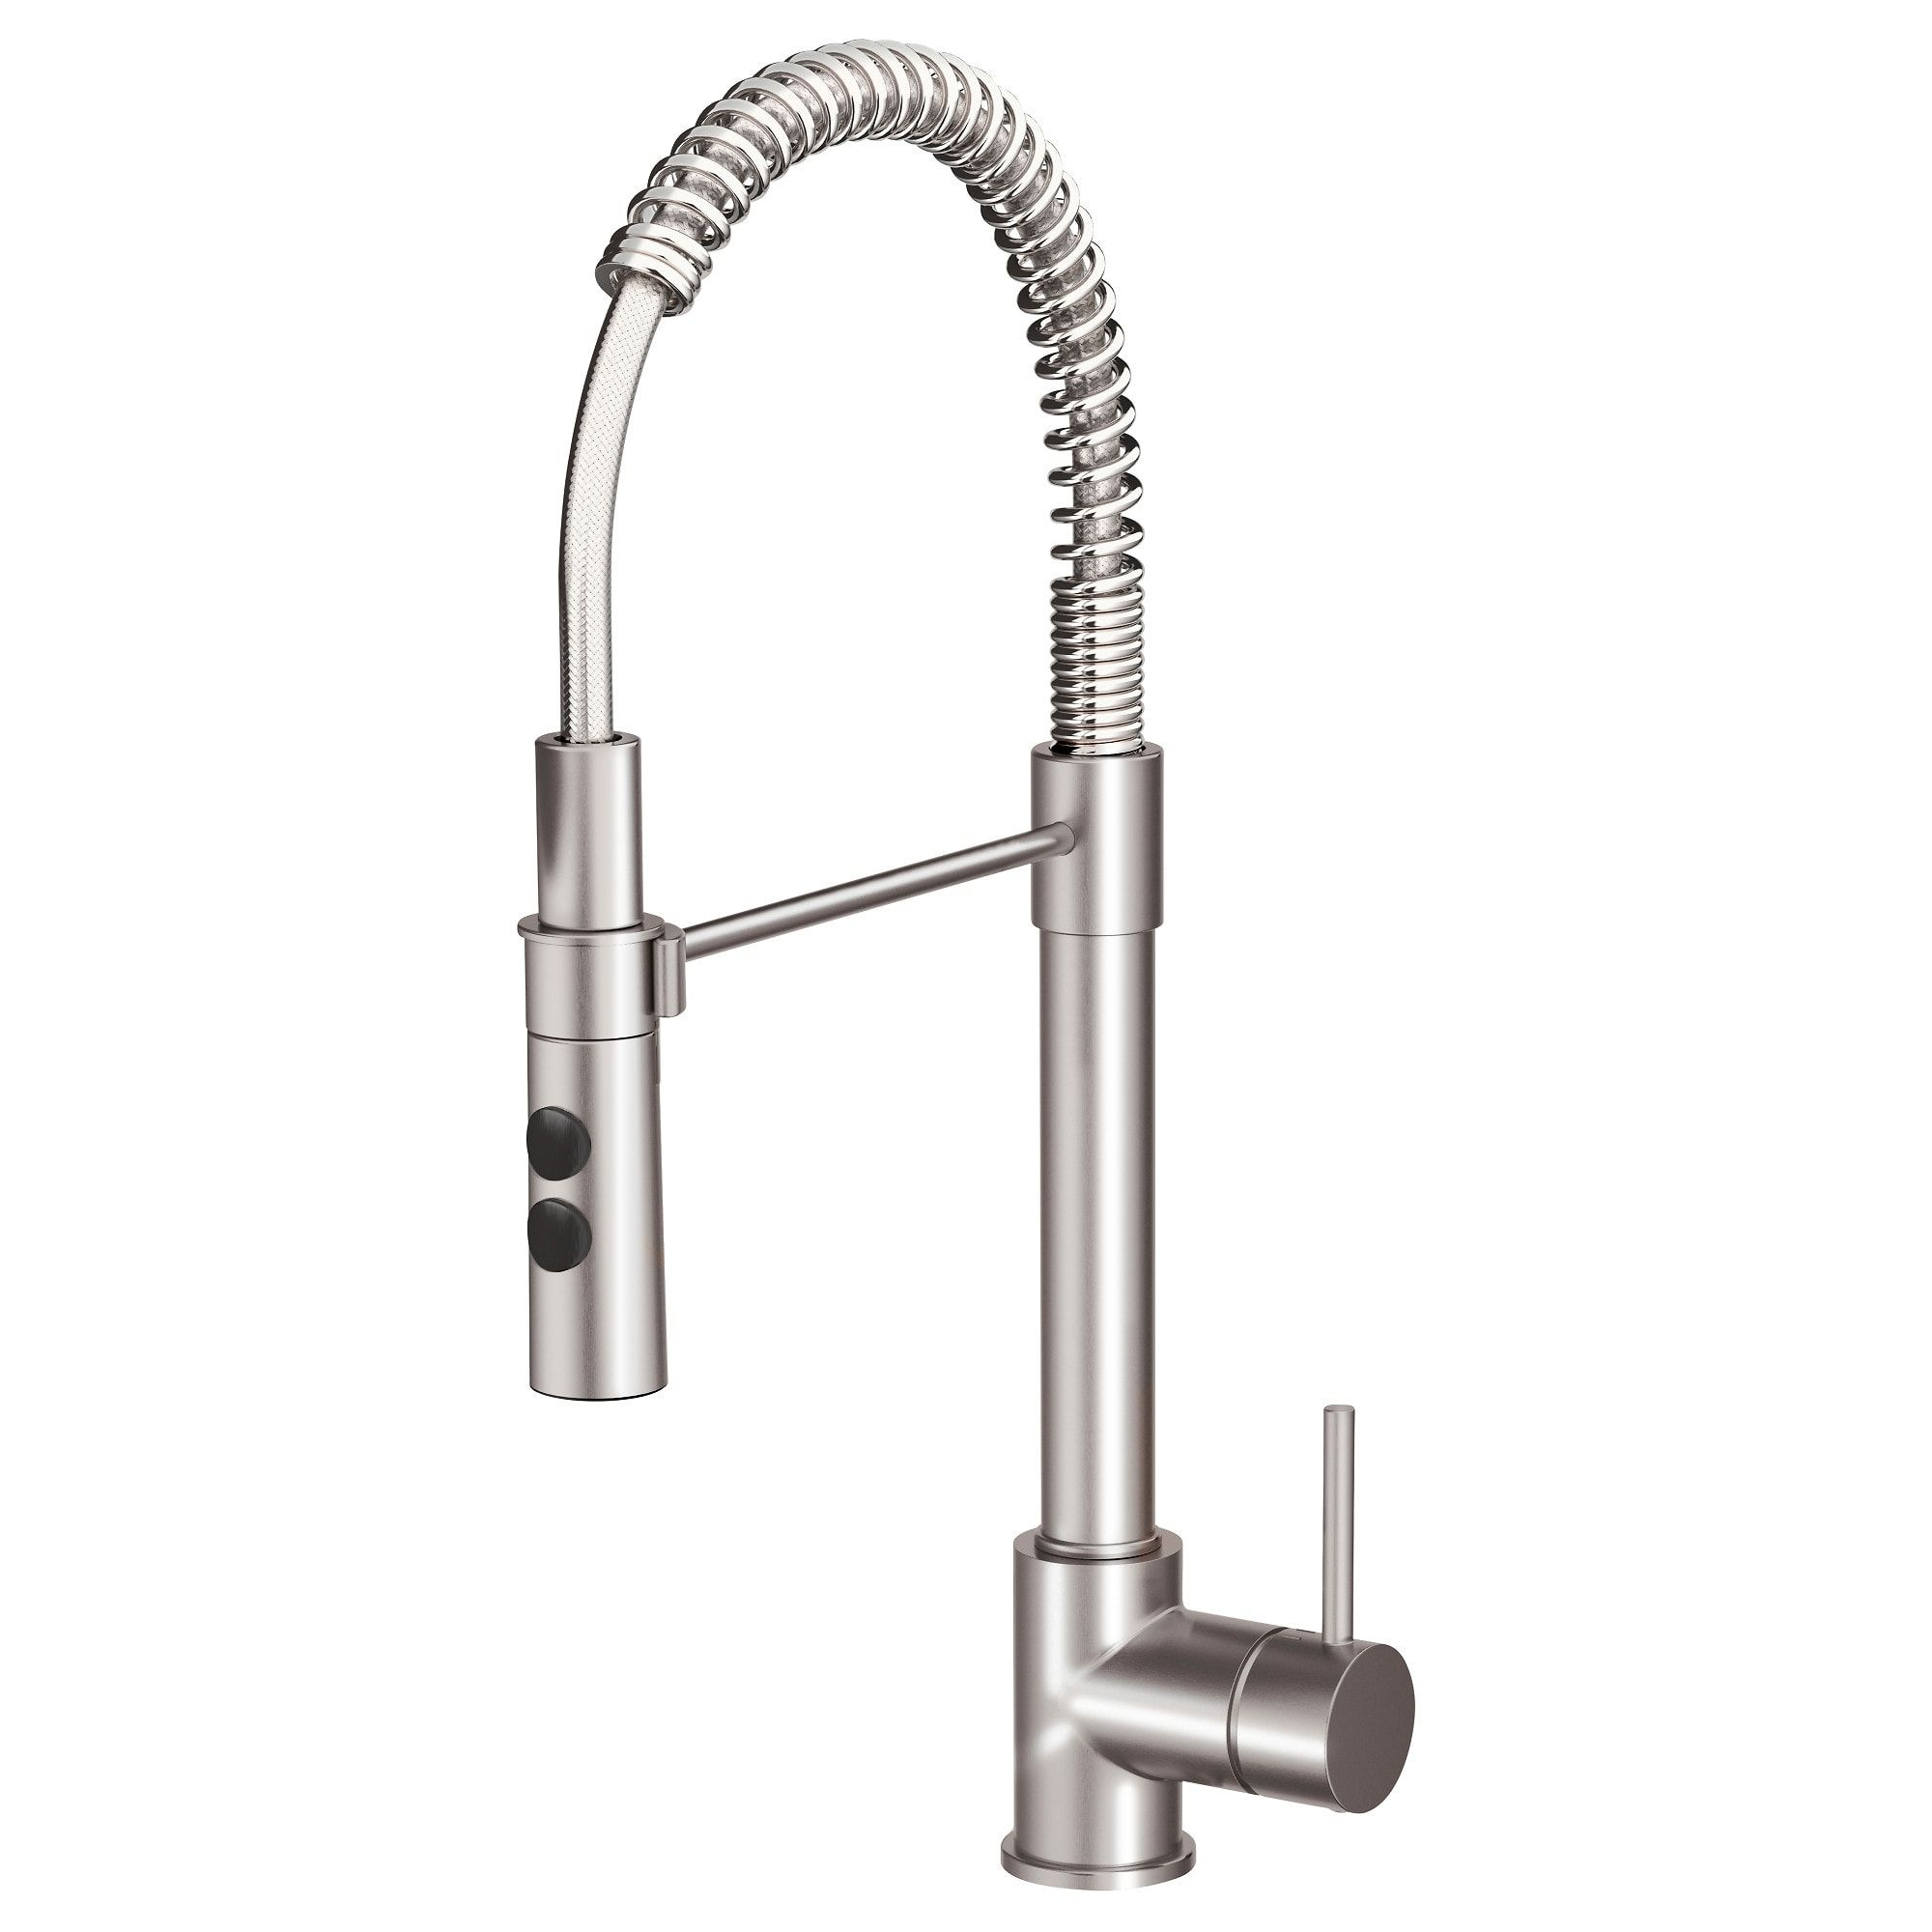 IKEA US - Furniture and Home Furnishings  Ikea kitchen faucet